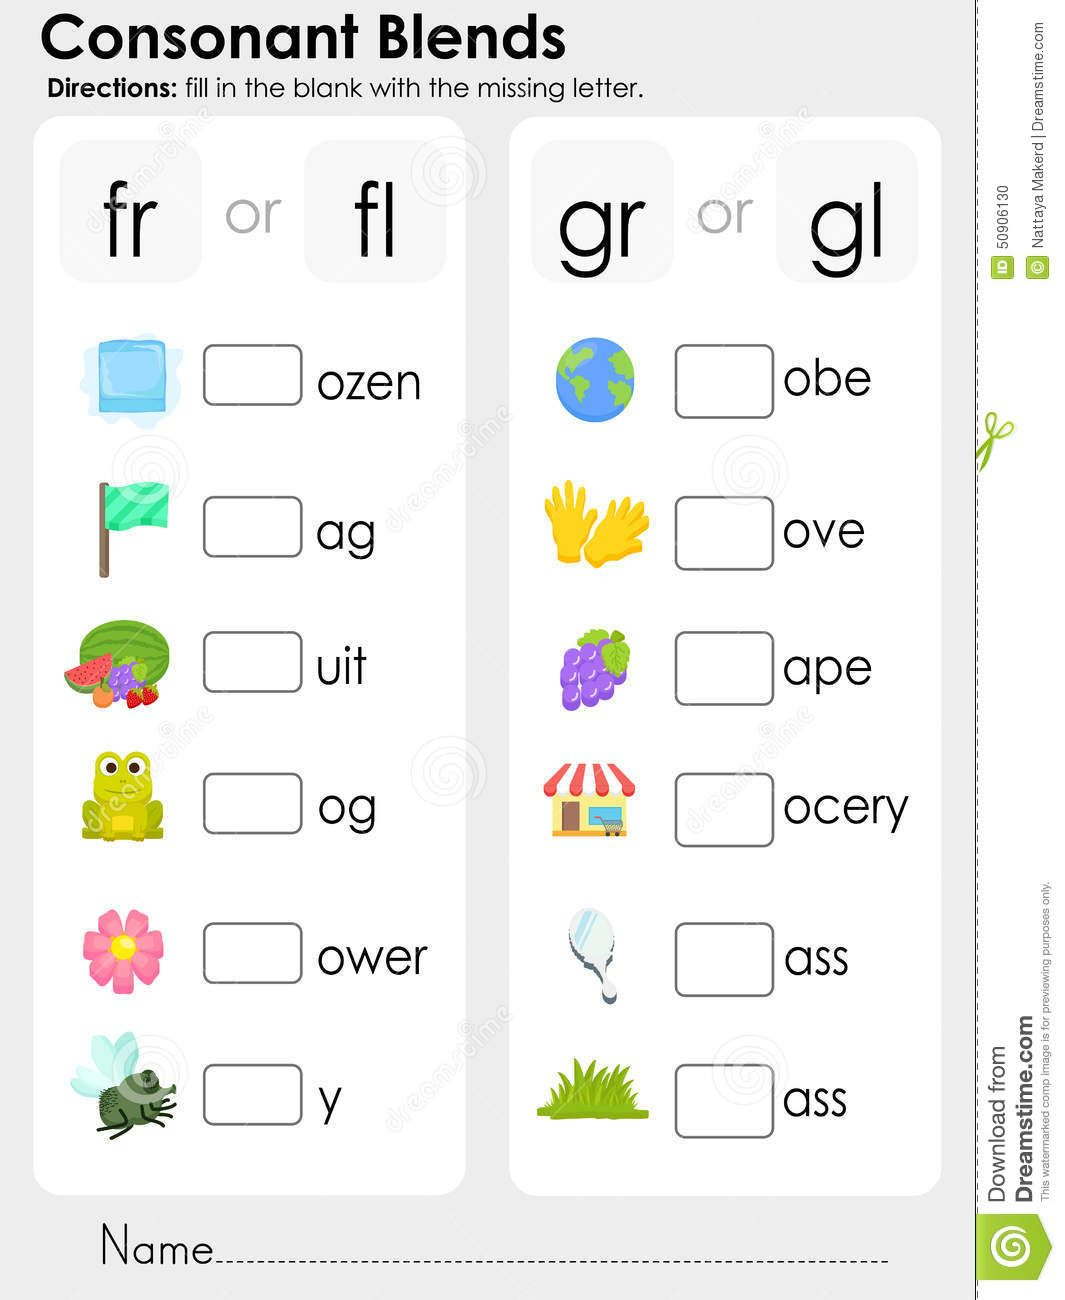 Consonant Blends Worksheets For Kindergarten - Scalien ...